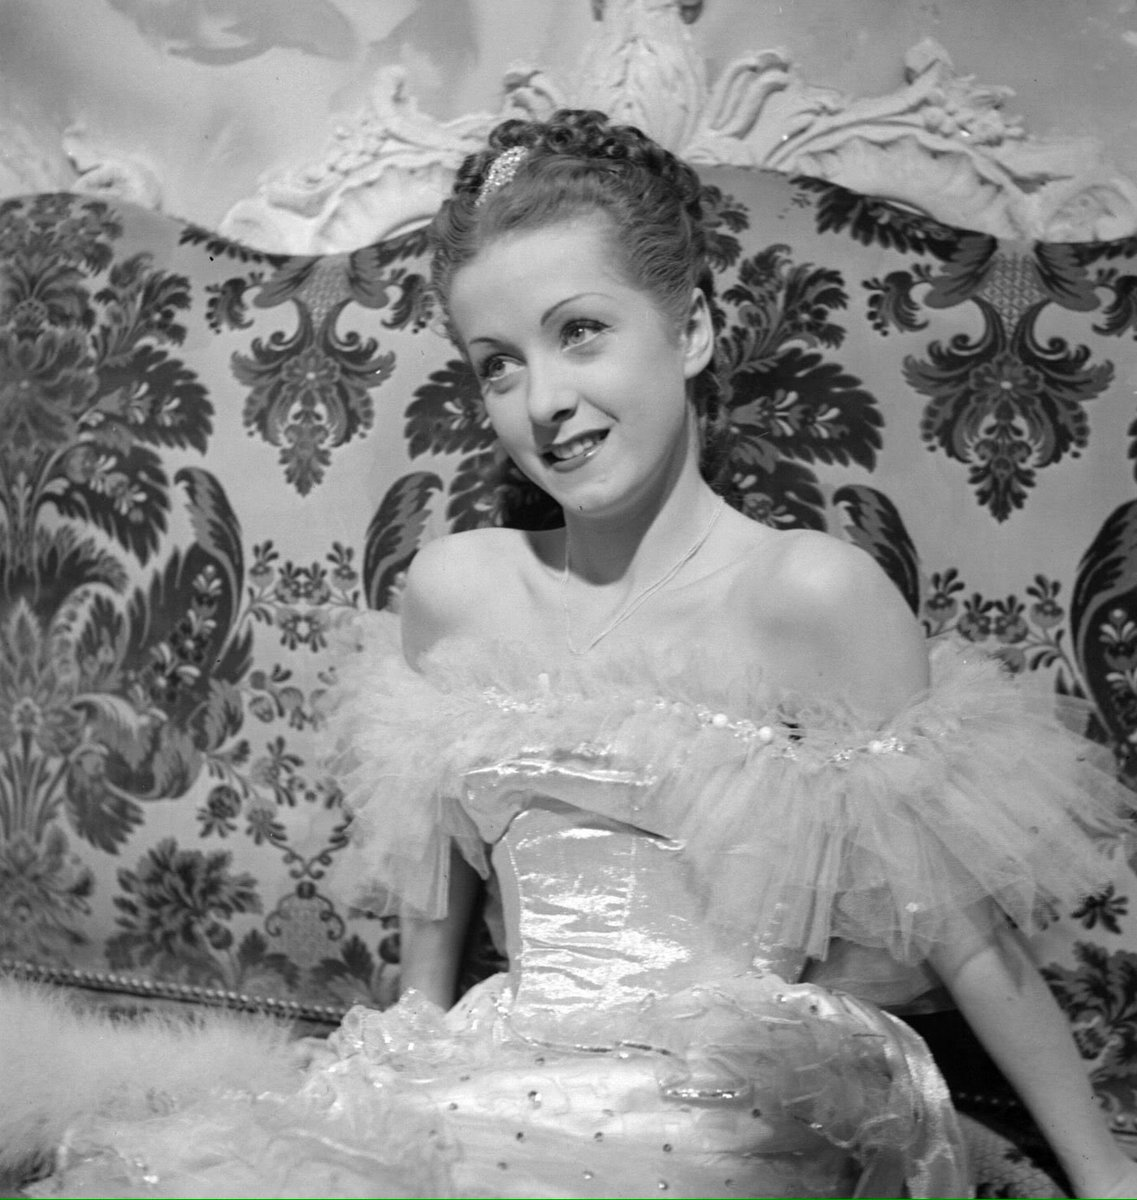 Adieu to the divine Danielle Darrieux.  100 incredible years, beauty and art.  #farewell #danielledarrieux<br>http://pic.twitter.com/gRp9vmsrkz